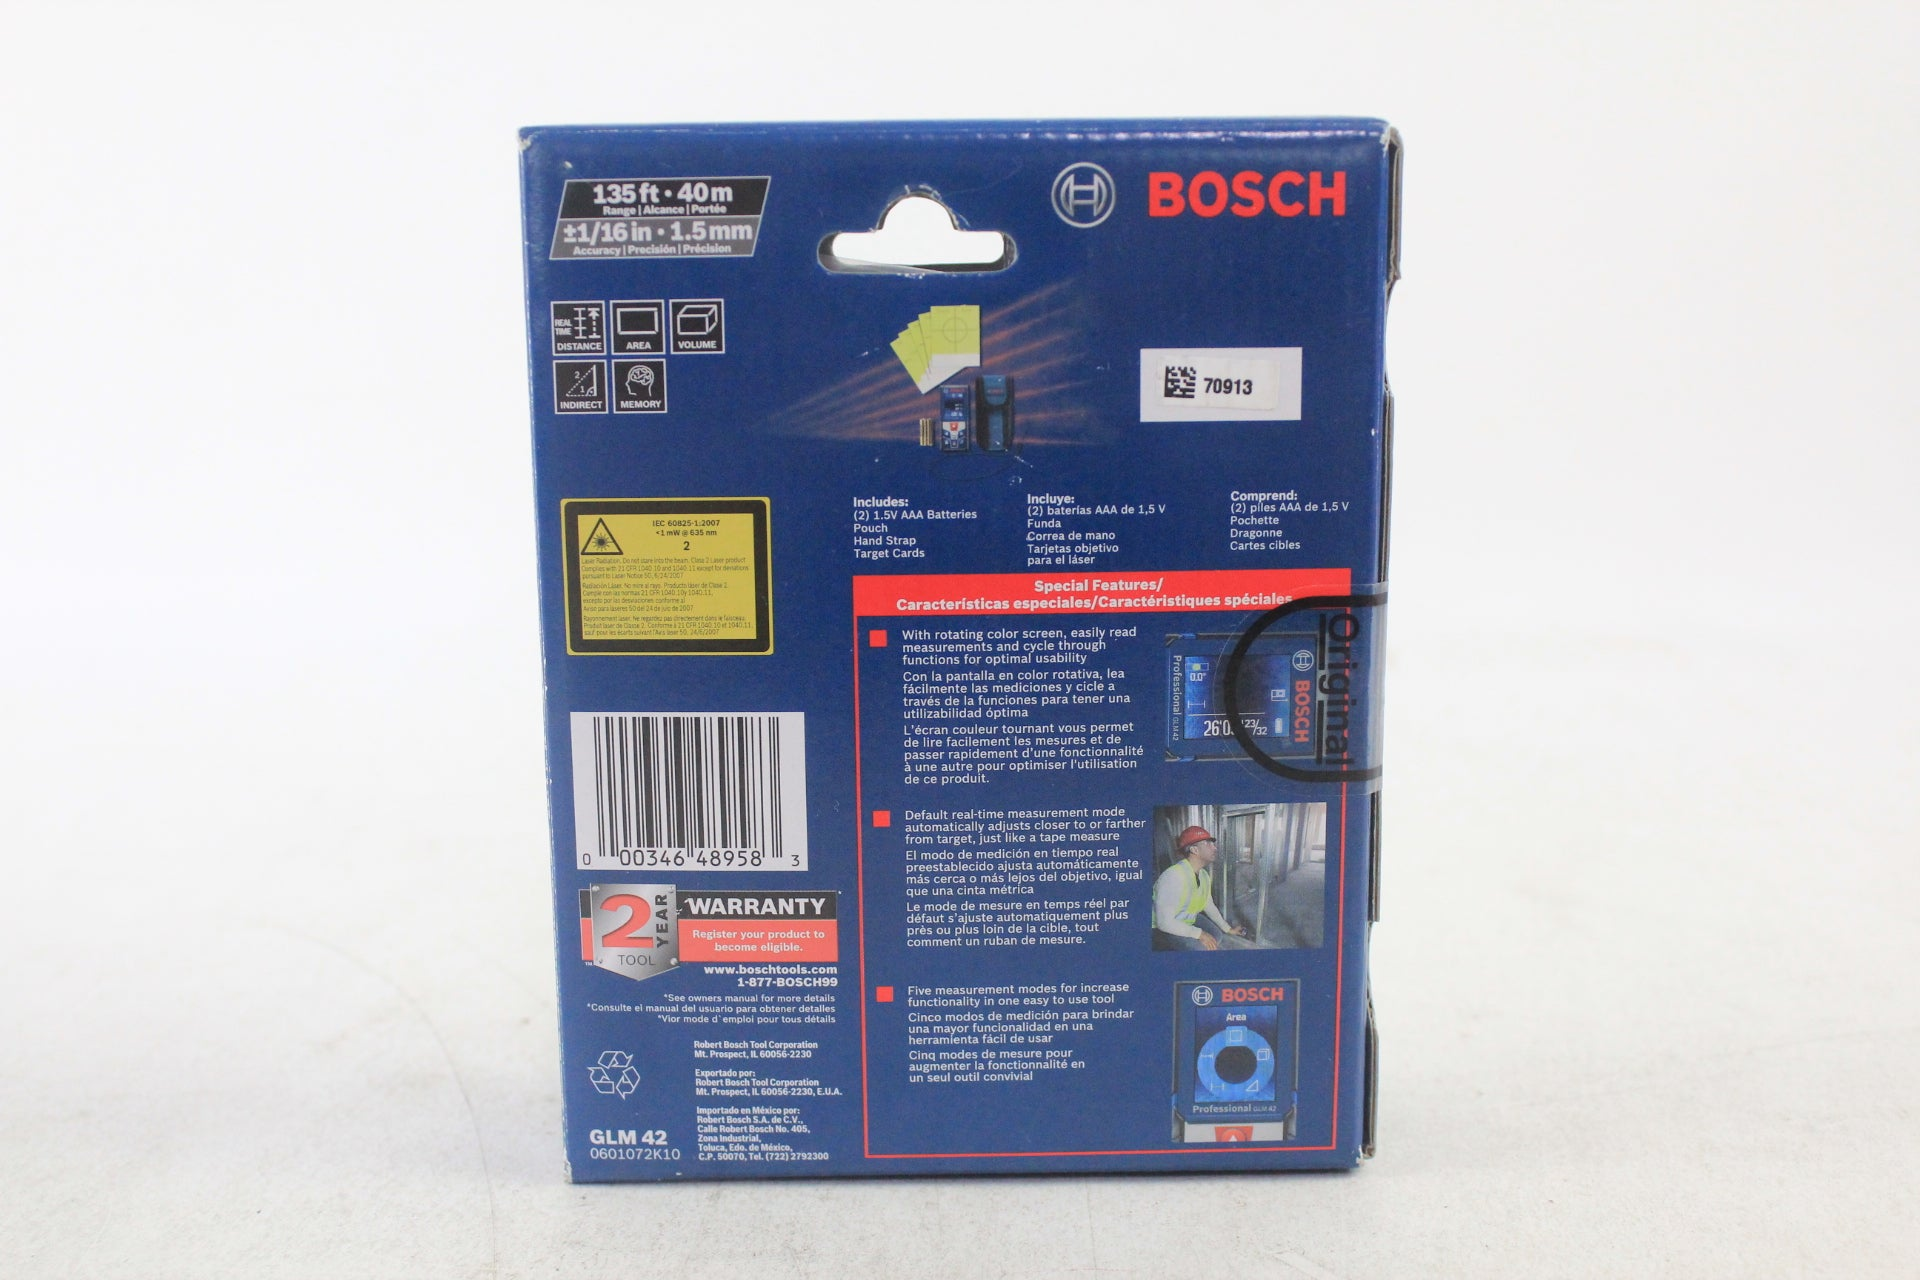 Bosch GLM 42 BLAZE 135-ft Indoor Laser Distance Measurer